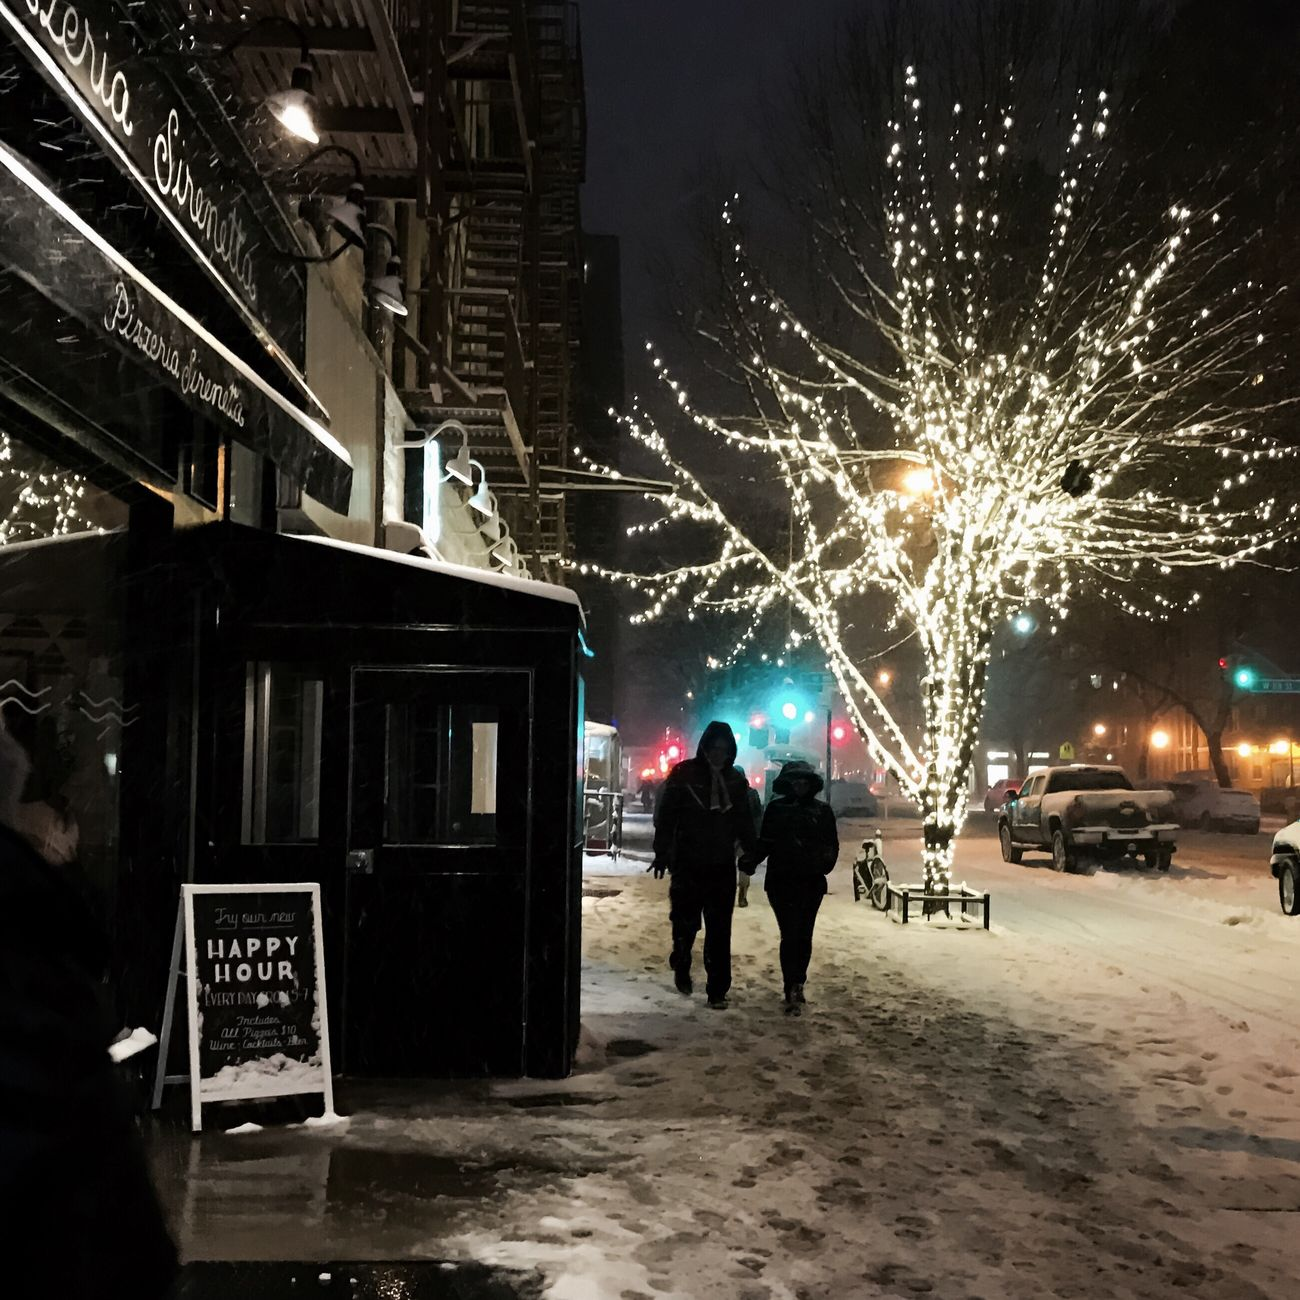 #snow #uws #nyc #winter2017 #happyhour #timyoungiphoneography